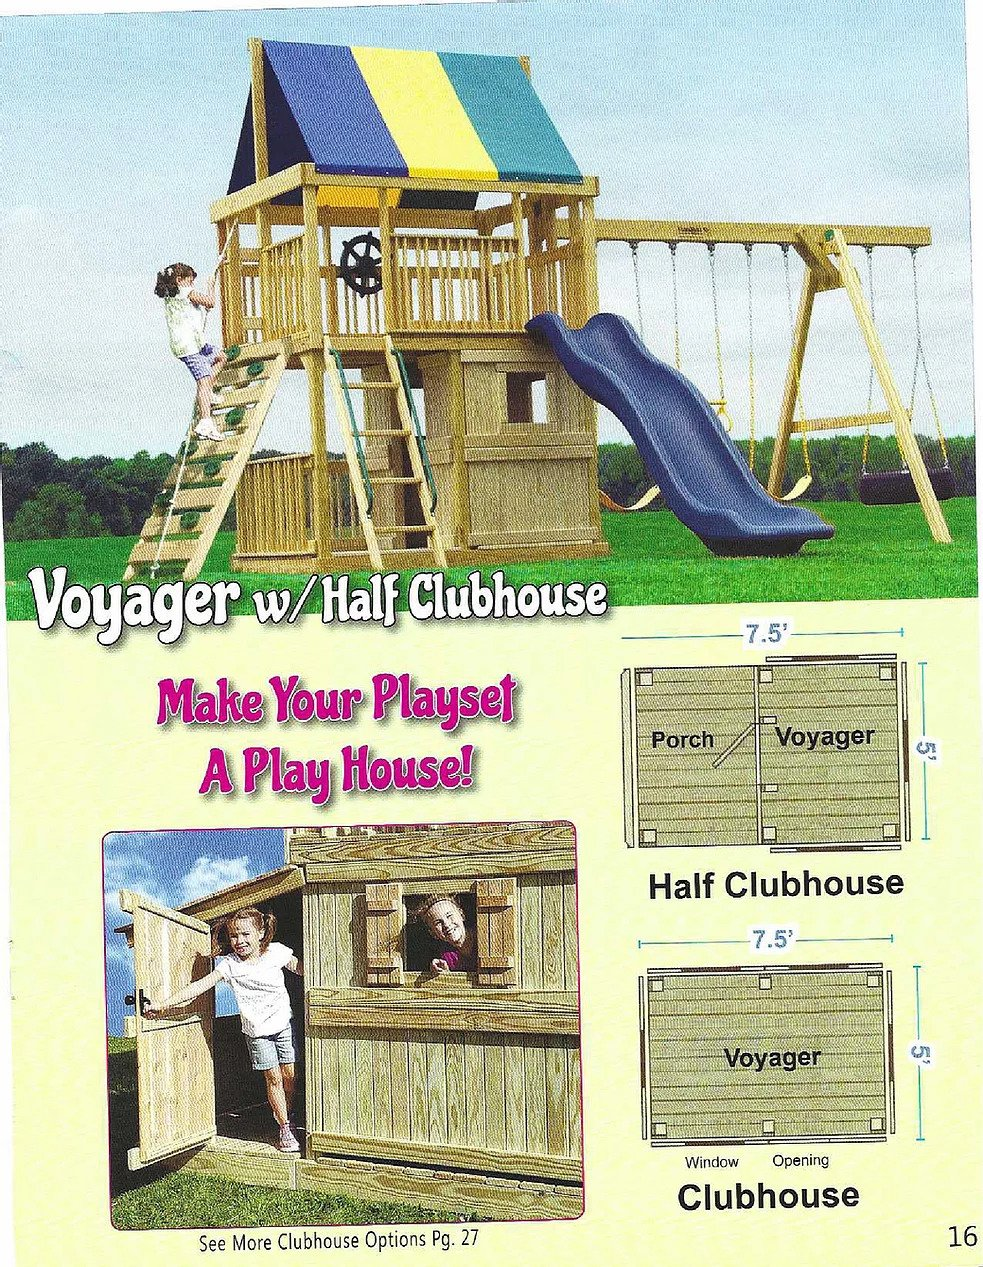 Voyager w/Half Clubhouse